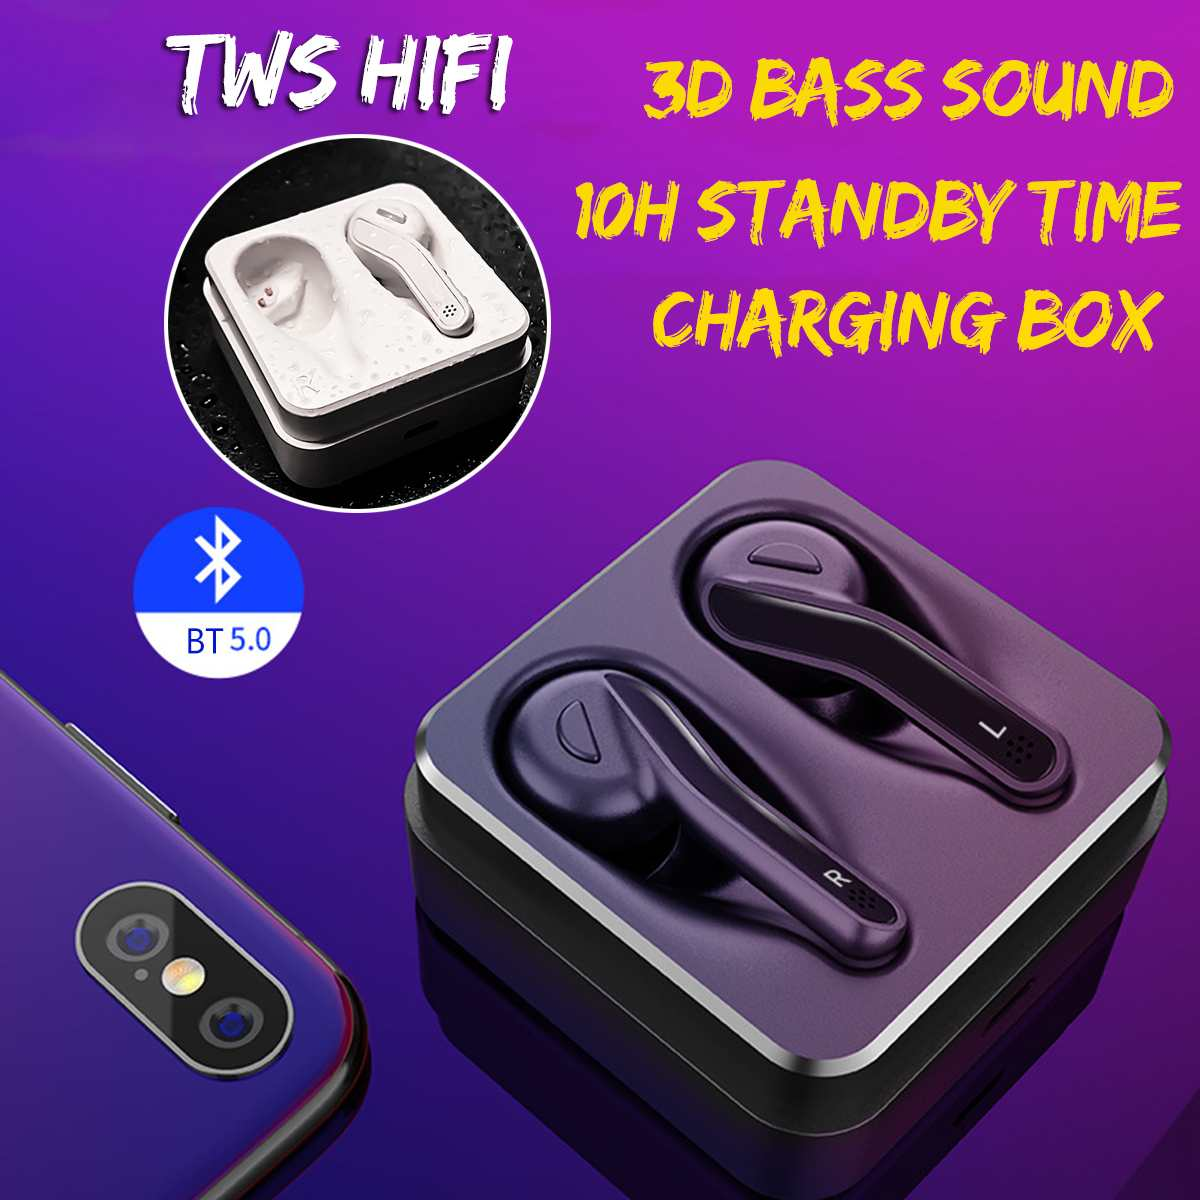 bluetooth 5.0 Headset <font><b>TWS</b></font> Wireless Earphone 3D Stereo Bass Sound Effect Waterproof Sports Twins Earbuds with Charging Box image